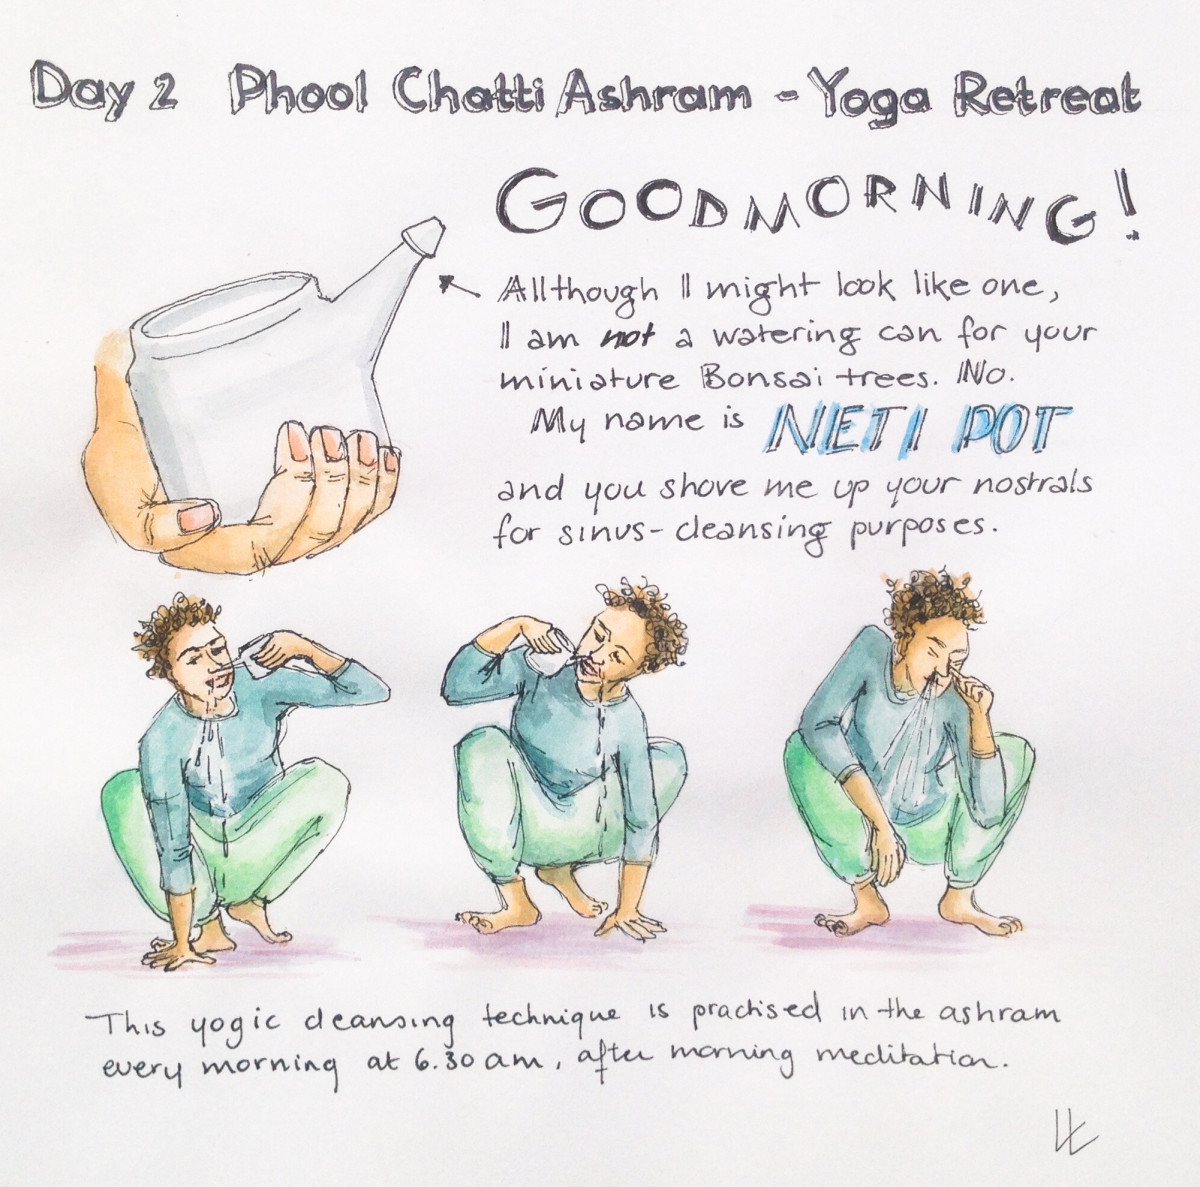 2 - neti pot yogic cleansing